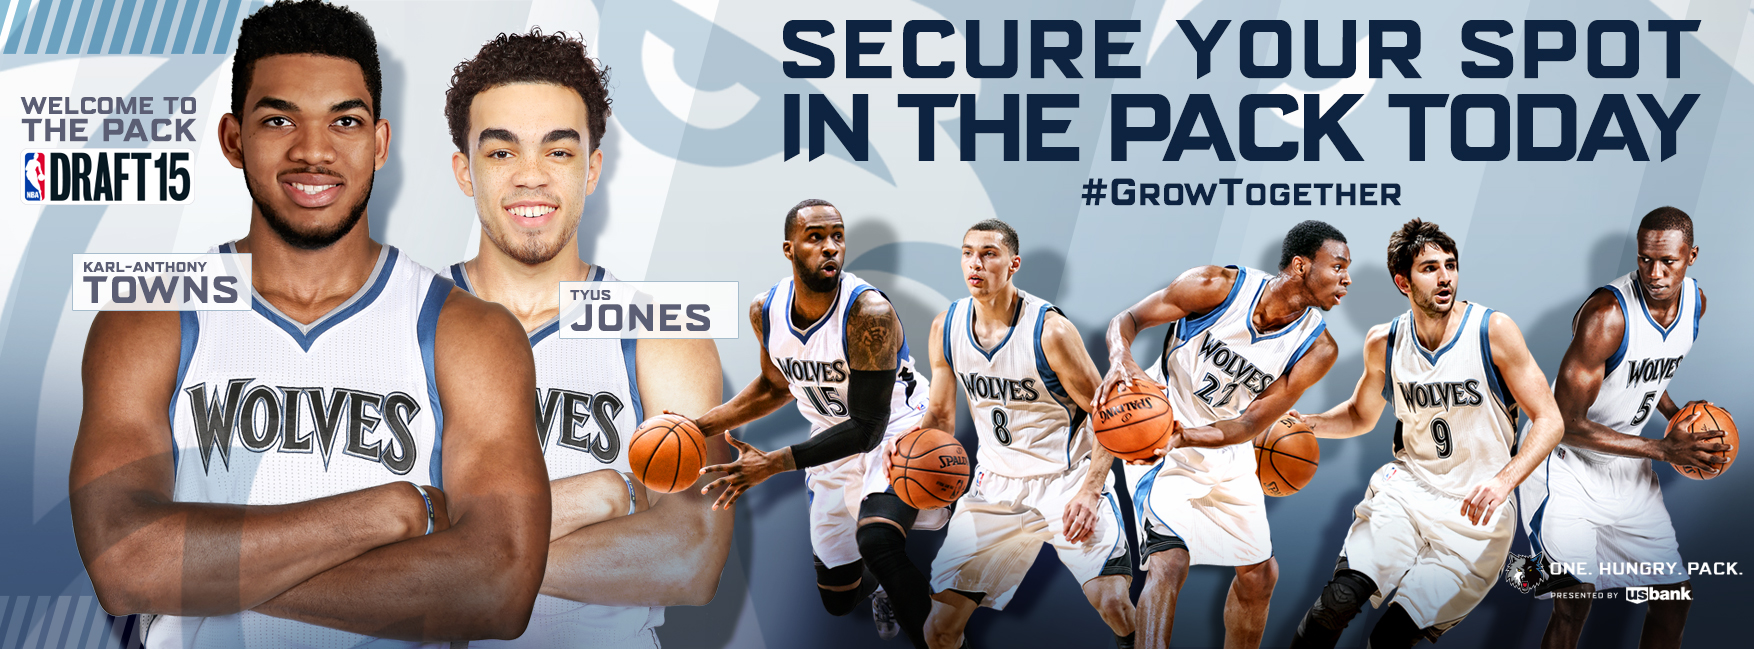 d11aec2ab Minnesota Timberwolves Welcome Karl-Anthony Towns and Tyus Jones Towns To  The Pack!